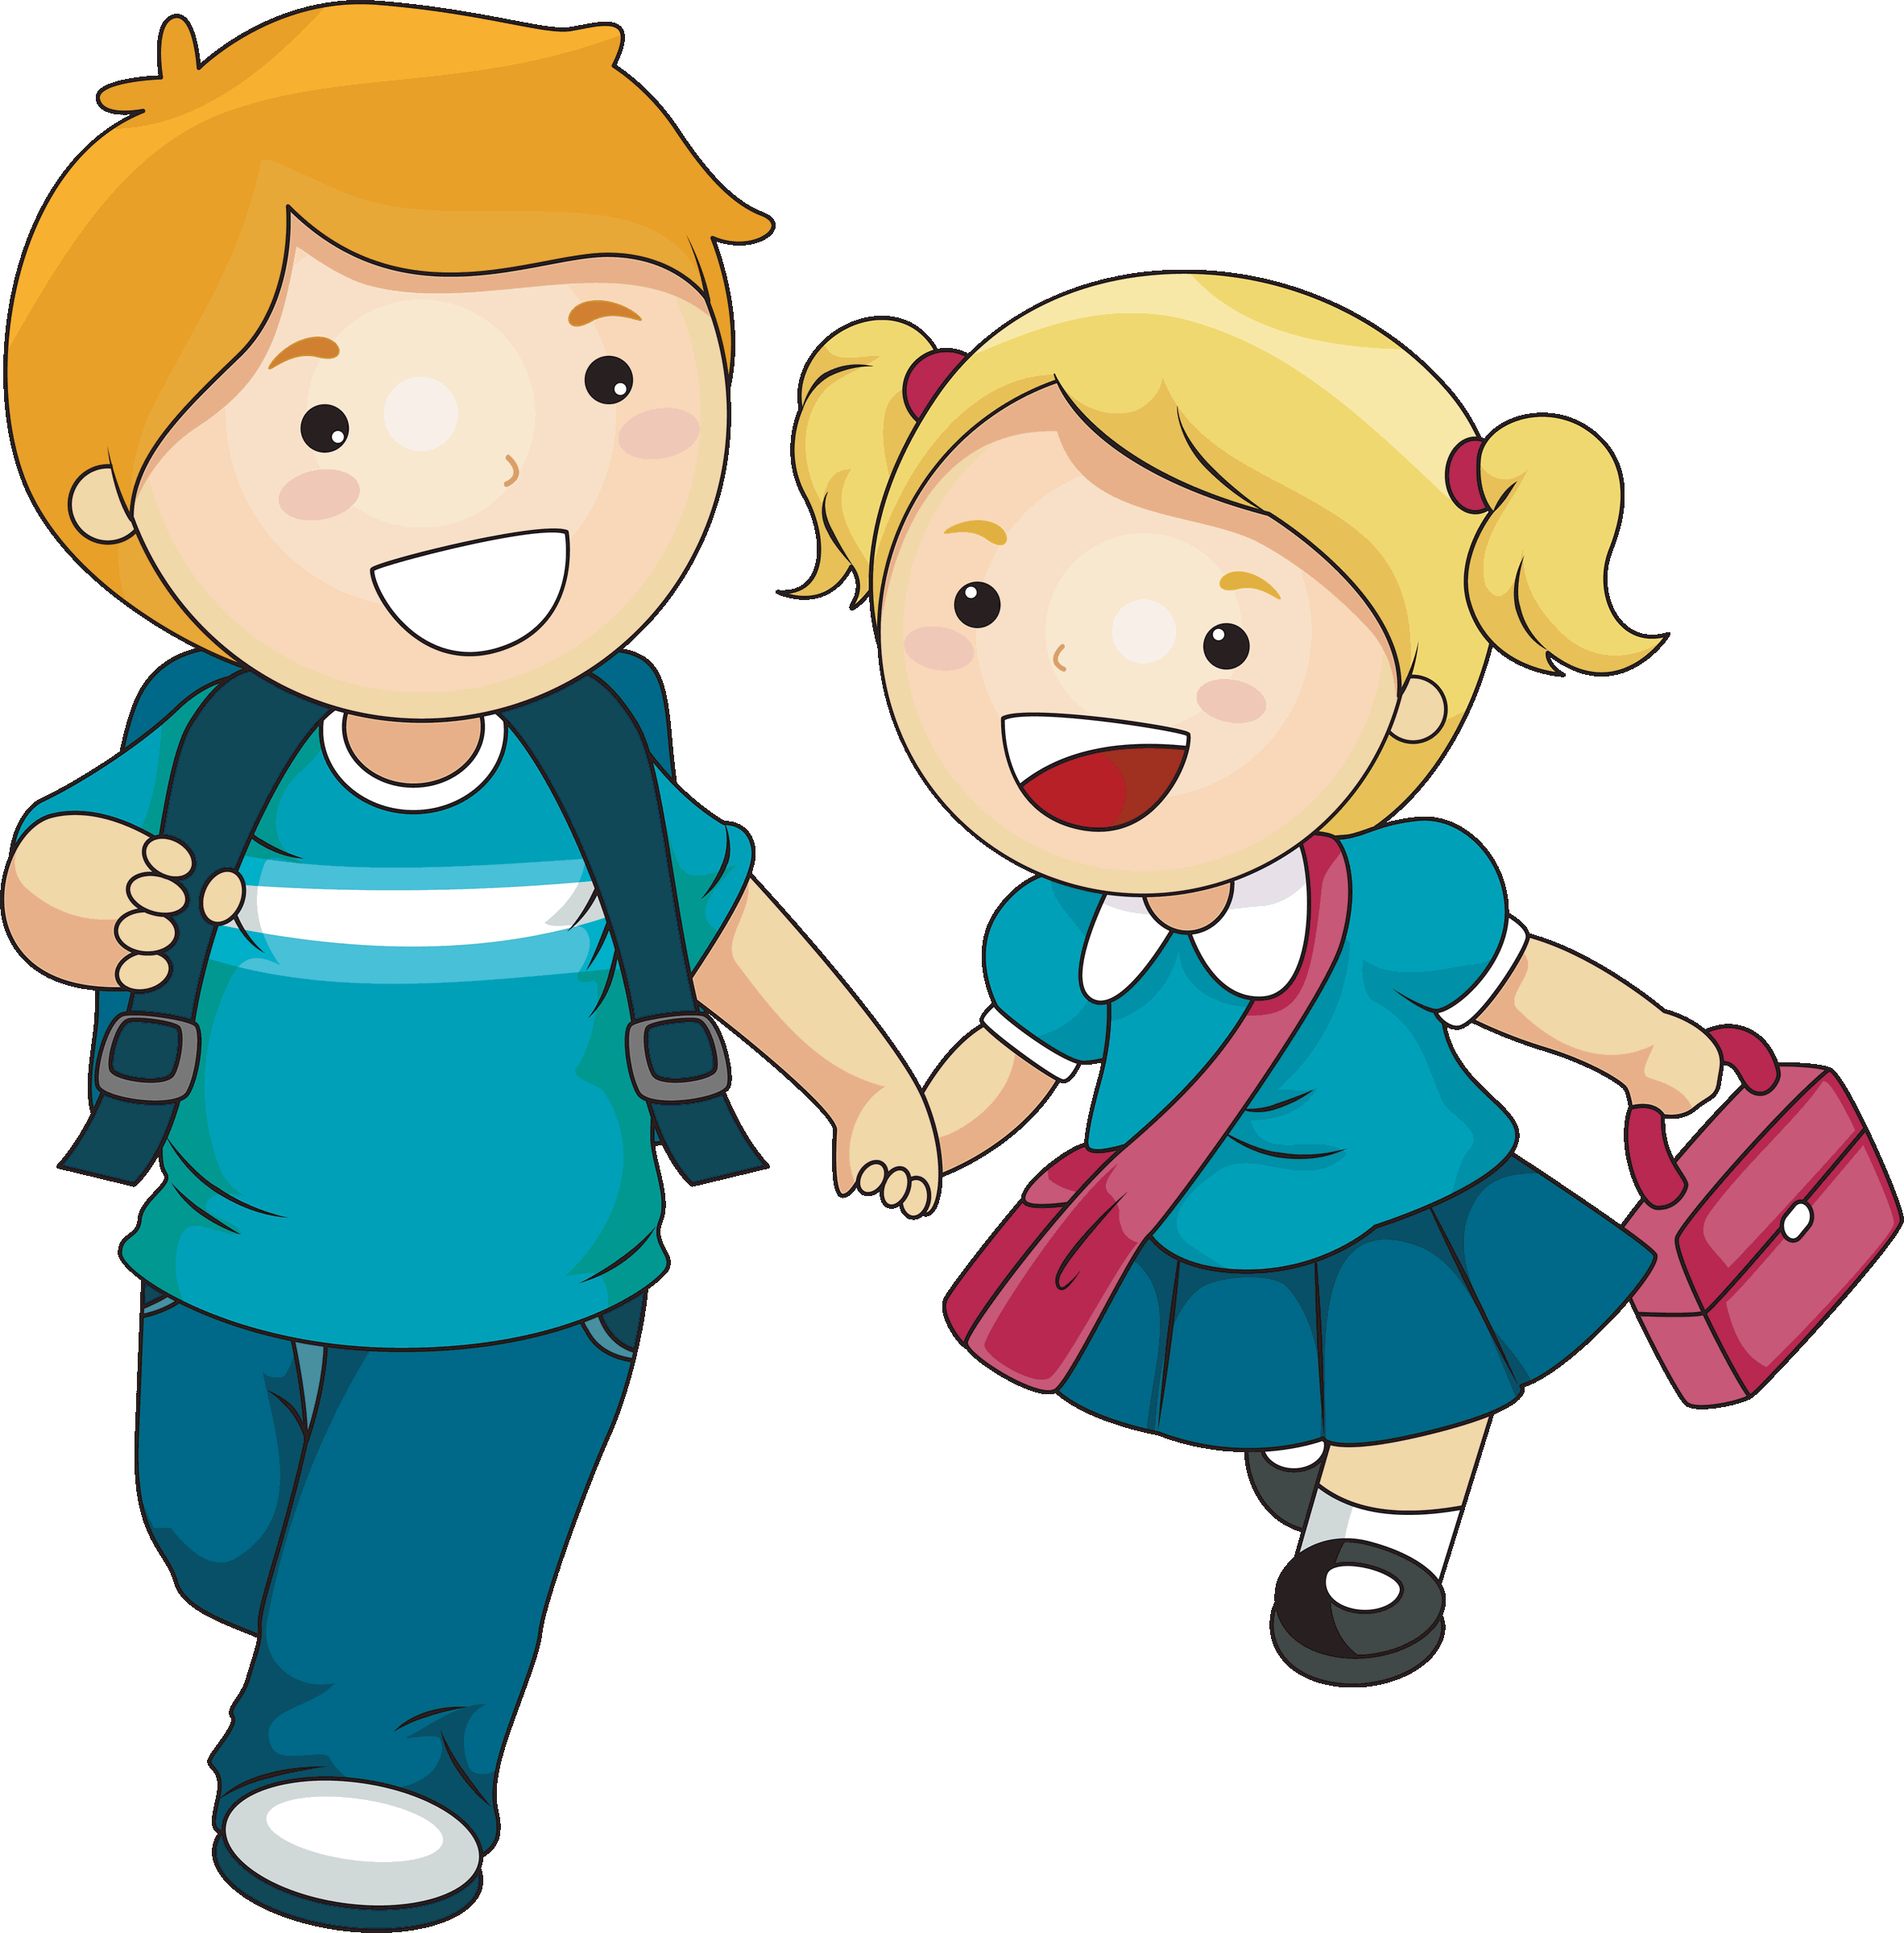 2364x2400 Free Png Hd For School Use Transparent Hd For School Use.png